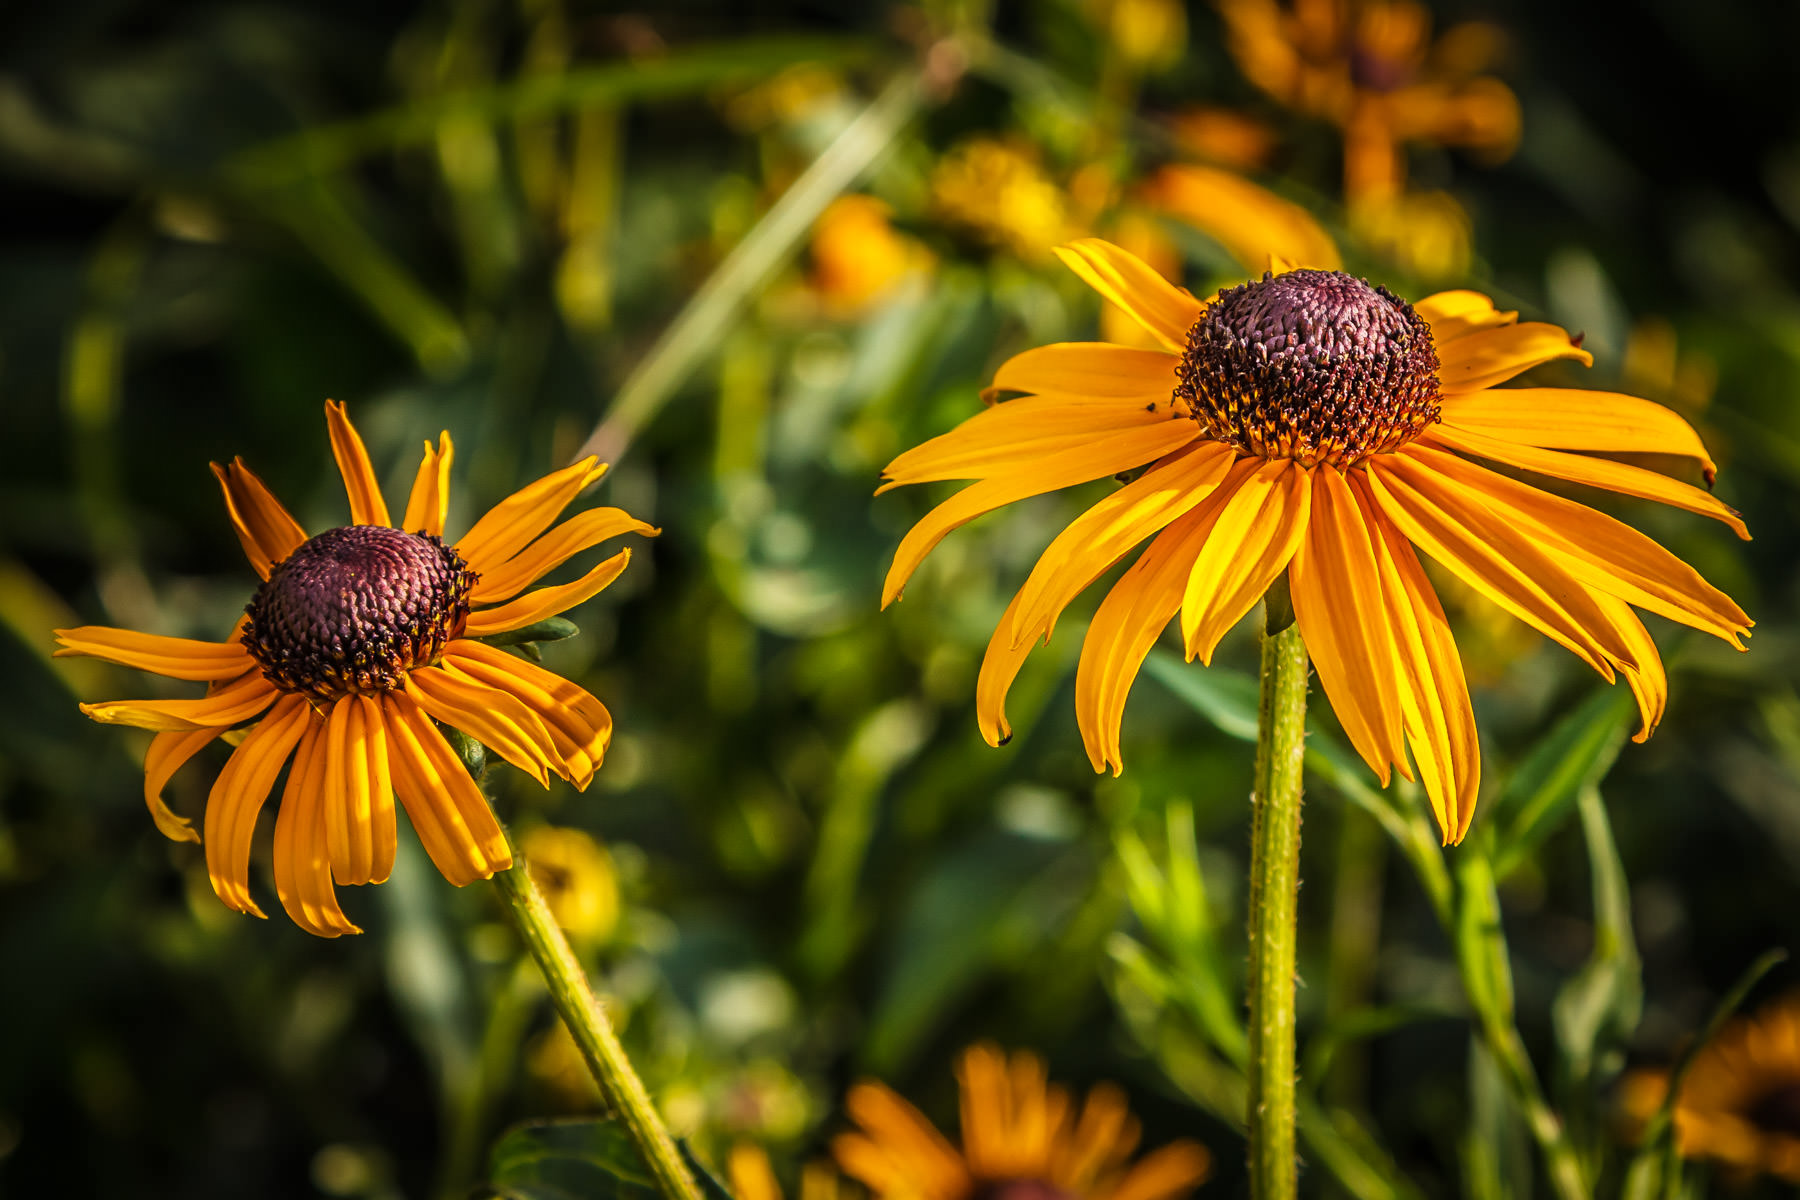 Two yellow daisies, also known as black-eyed susans, found at Dallas' Klyde Warren Park.